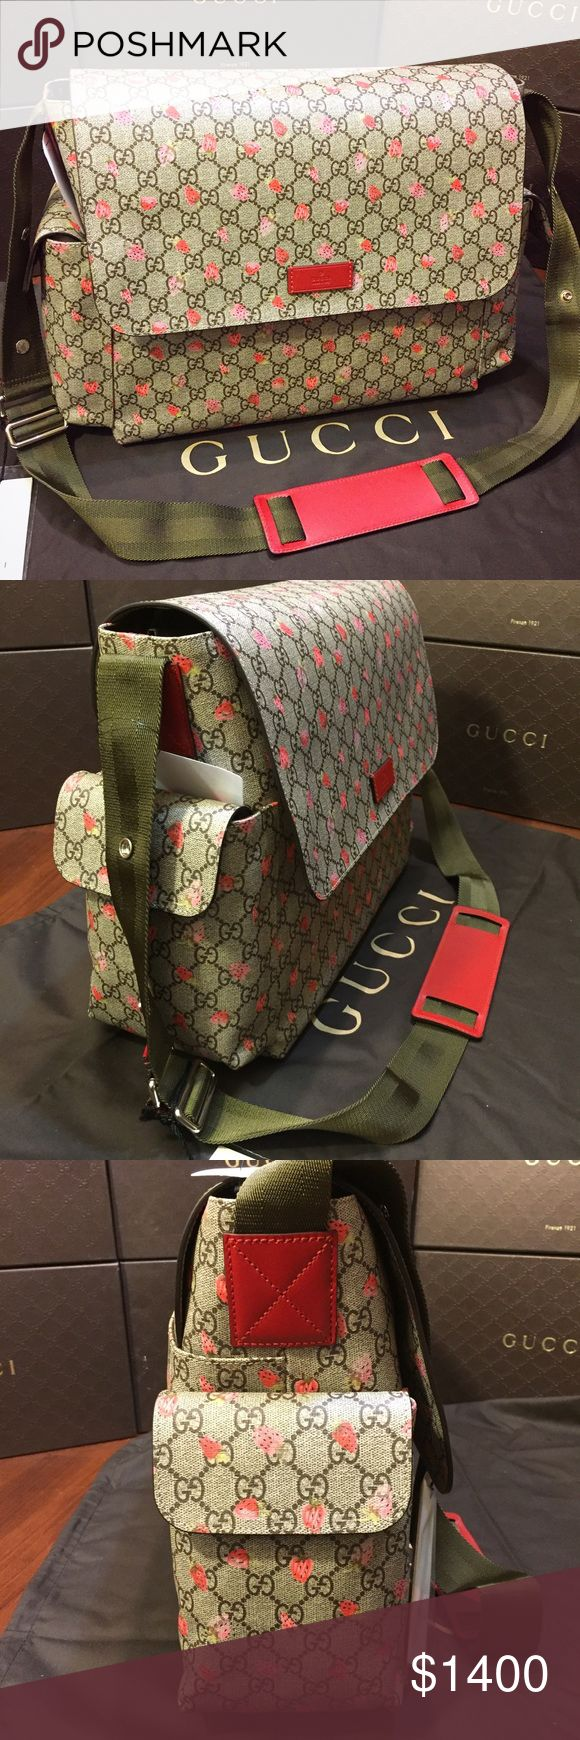 Gucci Baby Diaper Bag Wild Strawberry Print. NEW Gucci Baby Diaper Bag. Wild Strawberry Print on GG Supreme Coated Canvas. Fully lined brown nylon interior. 3 exterior pockets, 3 interior pockets. Includes Gucci Diaper changing pad. Adjustable shoulder strap. Includes Gucci Dust bag. Gucci Bags Baby Bags